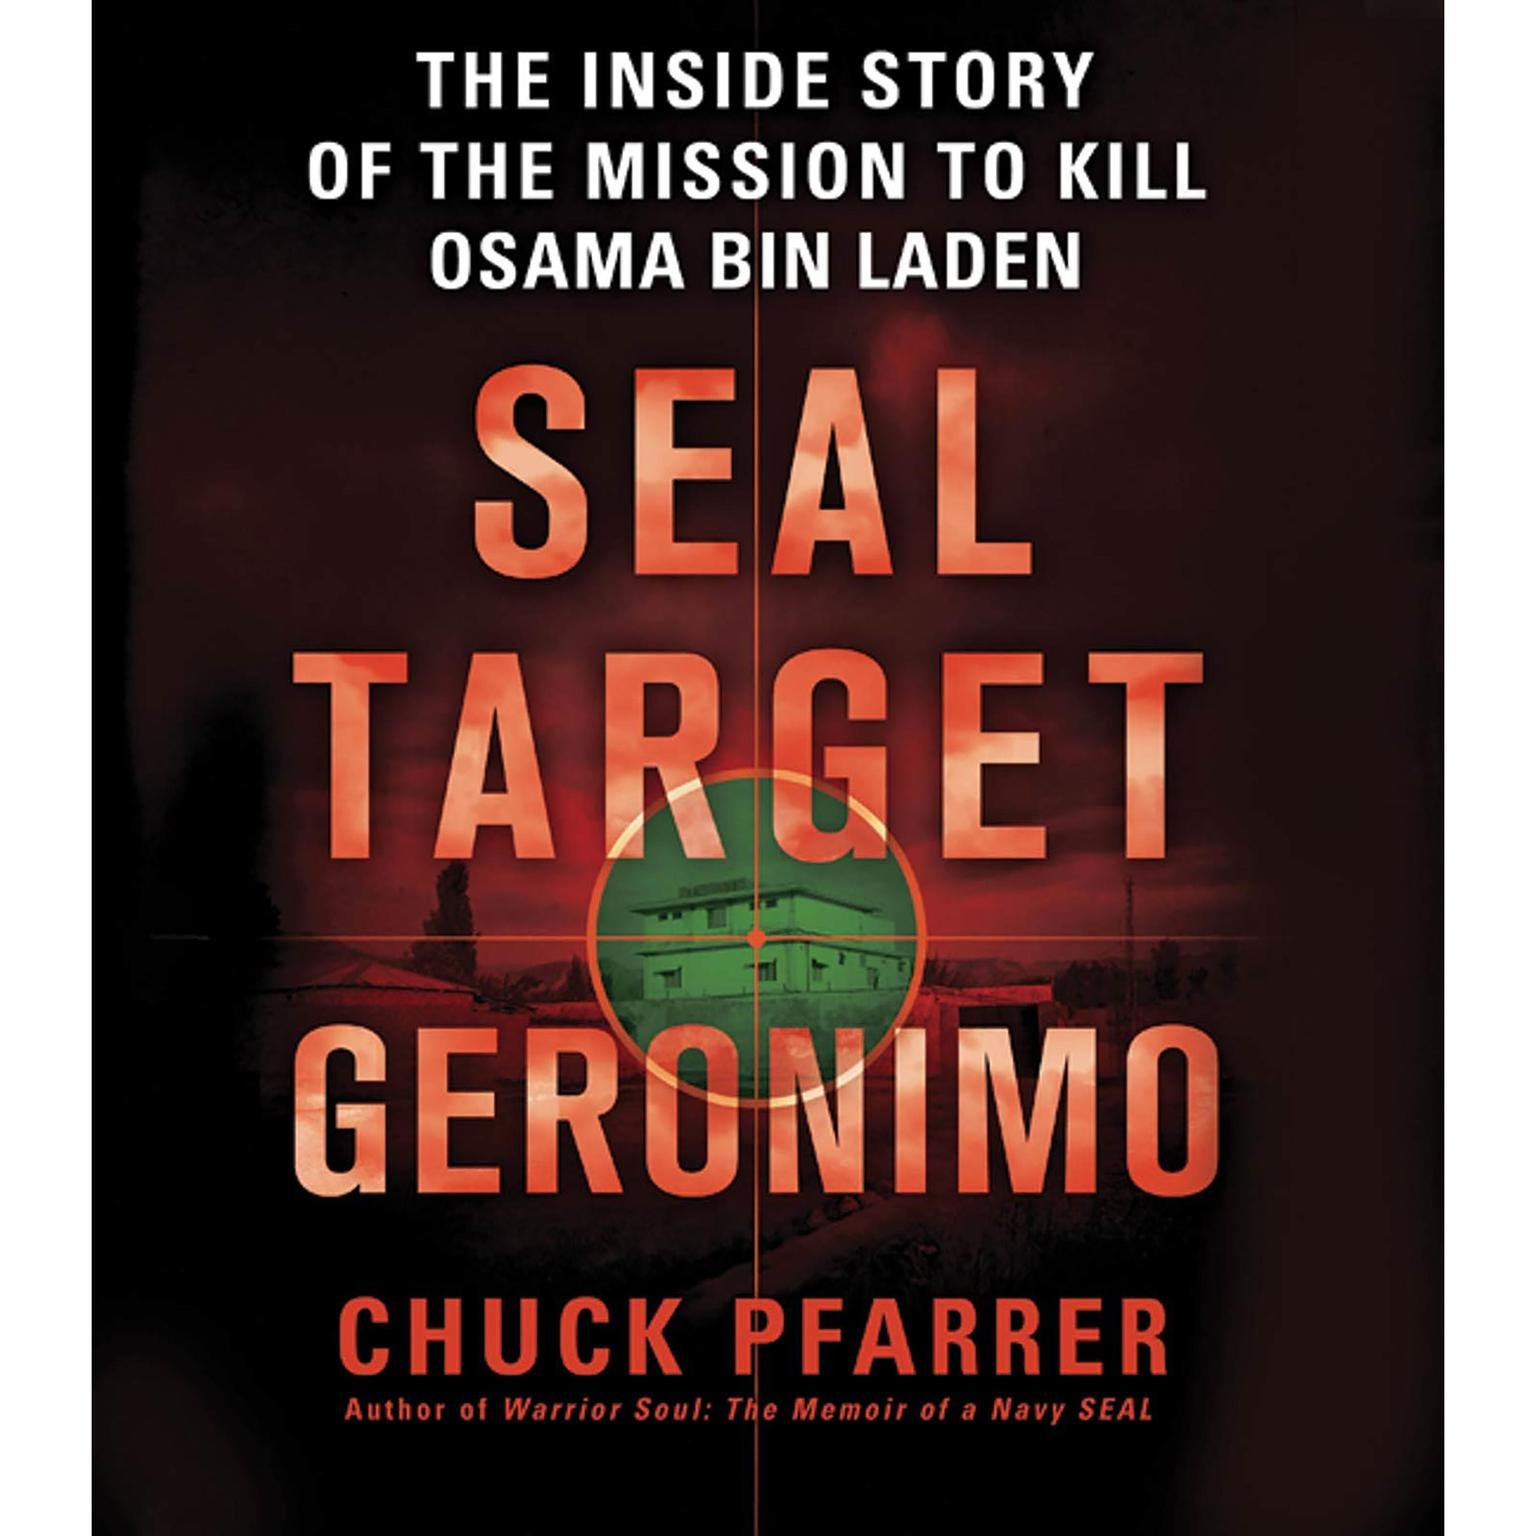 Printable SEAL Target Geronimo: The Inside Story of the Mission to Kill Osama bin Laden Audiobook Cover Art